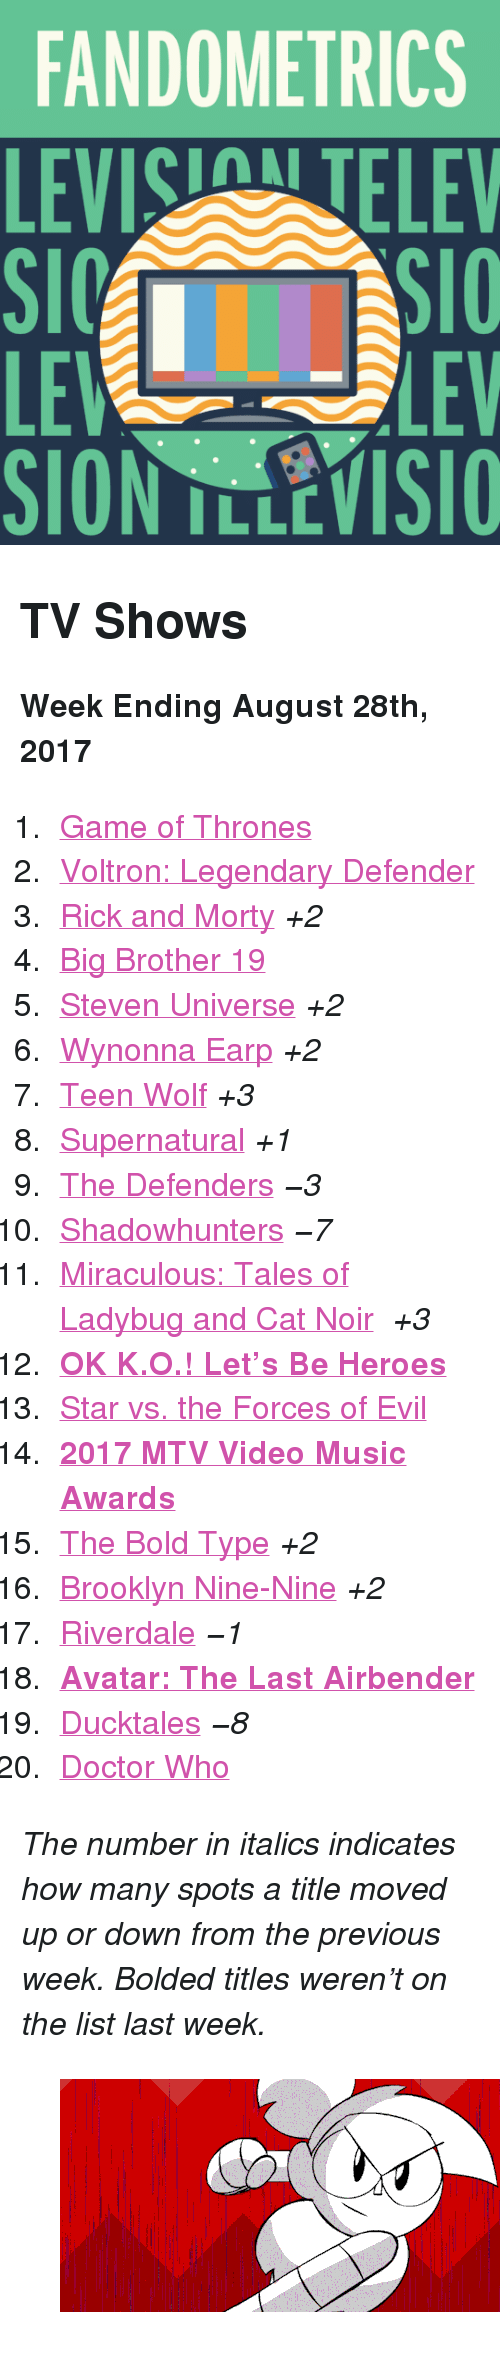 """Avatar the Last Airbender: FANDOMETRICS  LEVIS TELEV  LE  SION TLLEVISIO  LEV <h2>TV Shows</h2><p><b>Week Ending August 28th, 2017</b></p><ol><li><a href=""""http://tumblr.co/61308IMTM"""">Game of Thrones</a></li><li><a href=""""http://tumblr.co/61328IMTO"""">Voltron: Legendary Defender</a></li><li><a href=""""http://tumblr.co/61348IMTu"""">Rick and Morty</a><i>+2</i></li><li><a href=""""http://tumblr.co/61358IMTR"""">Big Brother 19</a></li><li><a href=""""http://tumblr.co/61368IMTr"""">Steven Universe</a><i>+2</i></li><li><a href=""""http://tumblr.co/61378IMTT"""">Wynonna Earp</a><i>+2</i></li><li><a href=""""http://tumblr.co/61388IMTp"""">Teen Wolf</a><i>+3</i></li><li><a href=""""http://tumblr.co/61398IMTV"""">Supernatural</a><i>+1</i></li><li><a href=""""http://tumblr.co/61308IMTn"""">The Defenders</a><i><i>−3</i></i></li><li><a href=""""http://tumblr.co/61318IMTX"""">Shadowhunters</a><i><i>−7</i></i></li><li><a href=""""http://tumblr.co/61328IMTk"""">Miraculous: Tales of Ladybug and Cat Noir</a> <i>+3</i></li><li><a href=""""http://tumblr.co/61338IMTZ""""><b>OK K.O.! Let&rsquo;s Be Heroes</b></a></li><li><a href=""""http://tumblr.co/61348IMTw"""">Star vs. the Forces of Evil</a></li><li><a href=""""http://tumblr.co/61358IMTb""""><b>2017 MTV Video Music Awards</b></a></li><li><a href=""""http://tumblr.co/61368IMTj"""">The Bold Type</a><i>+2</i></li><li><a href=""""http://tumblr.co/61378IMTd"""">Brooklyn Nine-Nine</a><i>+2</i></li><li><a href=""""http://tumblr.co/61388IMTe"""">Riverdale</a><i><i>−1</i></i></li><li><a href=""""http://tumblr.co/61398IMT5""""><b>Avatar: The Last Airbender</b></a></li><li><a href=""""http://tumblr.co/61308IMTg"""">Ducktales</a><i><i>−8</i></i></li><li><a href=""""http://tumblr.co/61318IMT9"""">Doctor Who</a></li></ol><p><i>The number in italics indicates how many spots a title moved up or down from the previous week. Bolded titles weren't on the list last week.</i></p><figure class=""""tmblr-full"""" data-orig-height=""""233"""" data-orig-width=""""500"""" data-tumblr-attribution=""""jpolgar1:Nk5XEIrNK__Ehx_qyoVtSQ:Zbvt5v2MoF83L""""><img src=""""https://78.media.tumblr.com/1e3d5"""